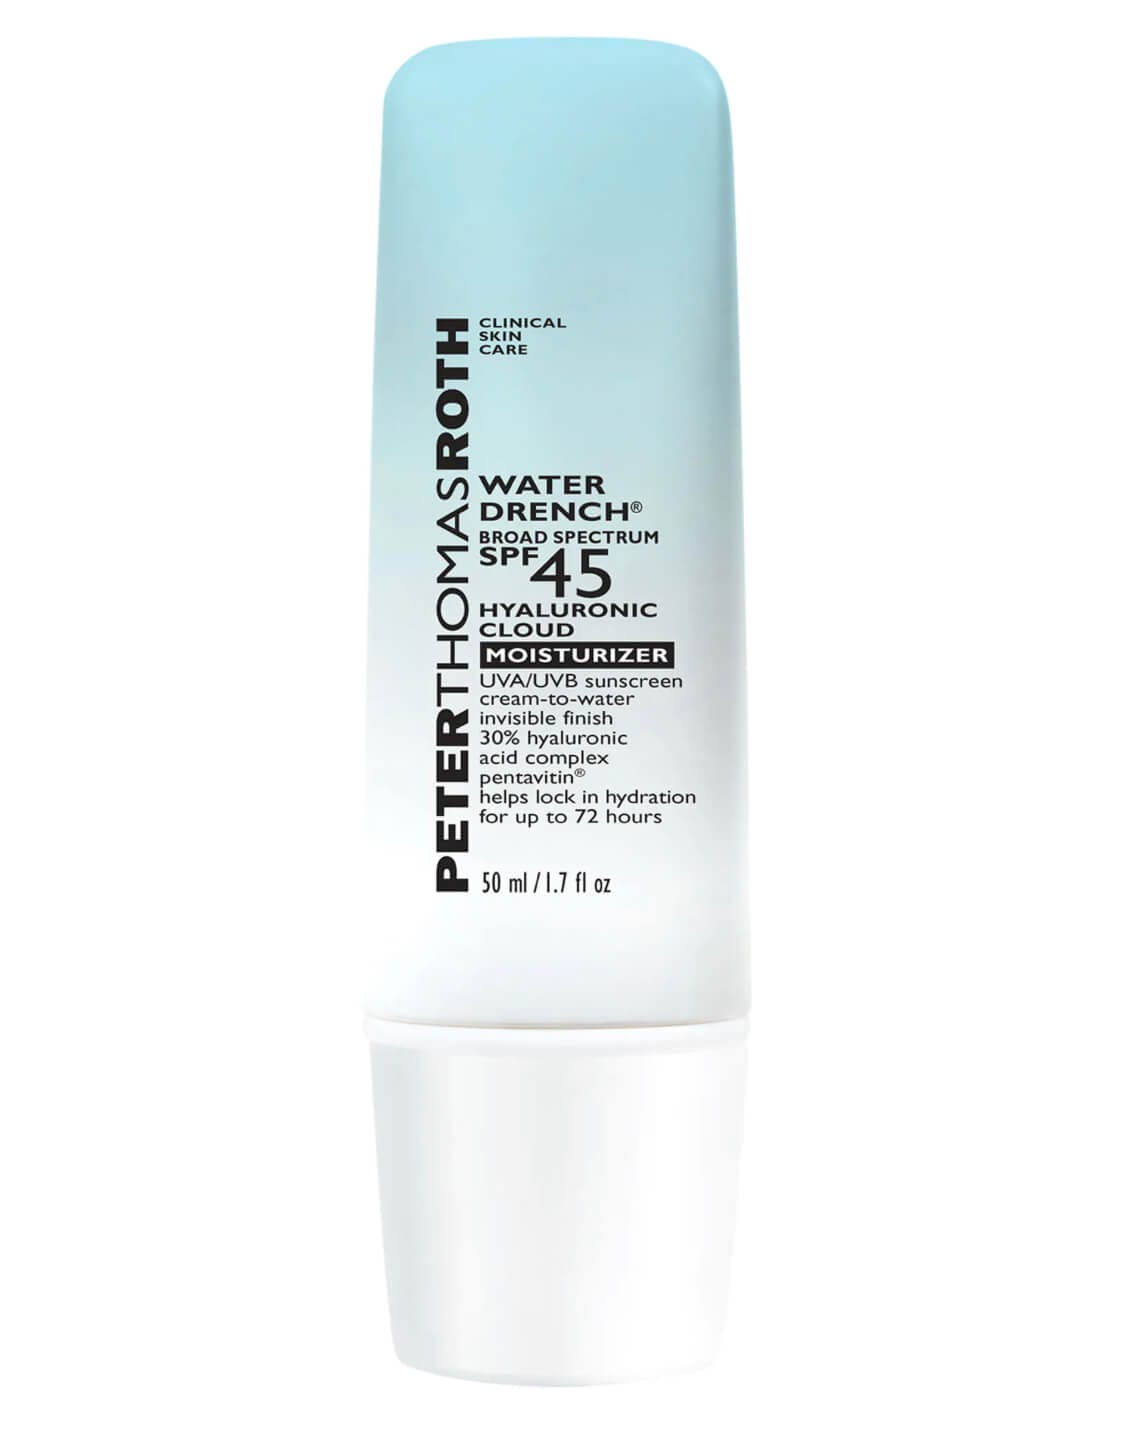 Water Drench® Hyaluronic Hydrating Moisturizer SPF 45 by Peter Thomas Roth